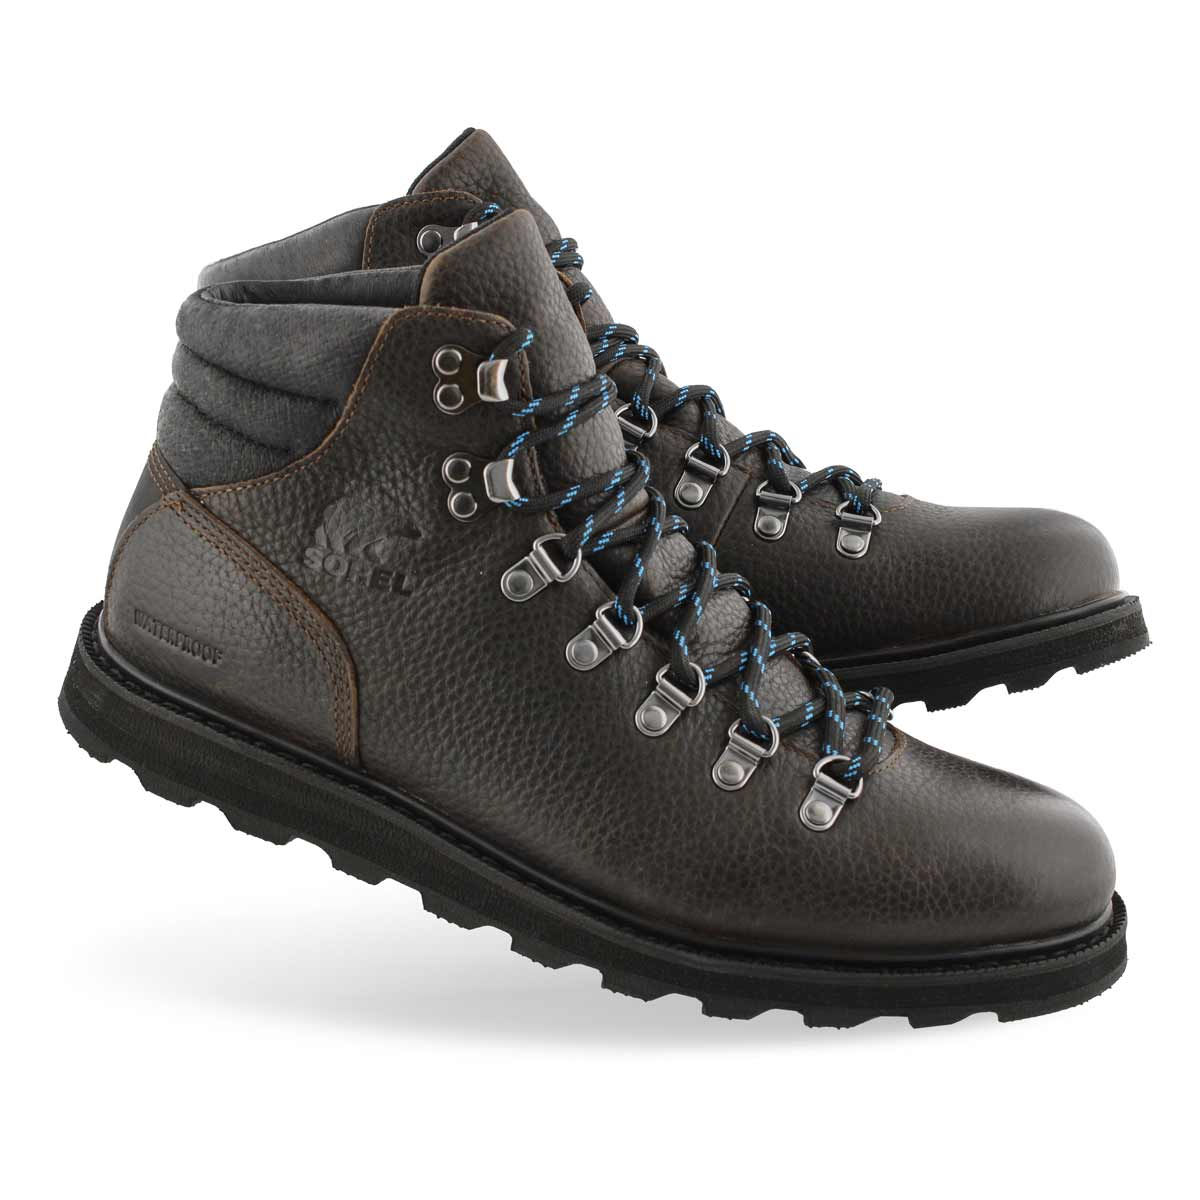 Mns Madson Hiker tobacco wtpf boot